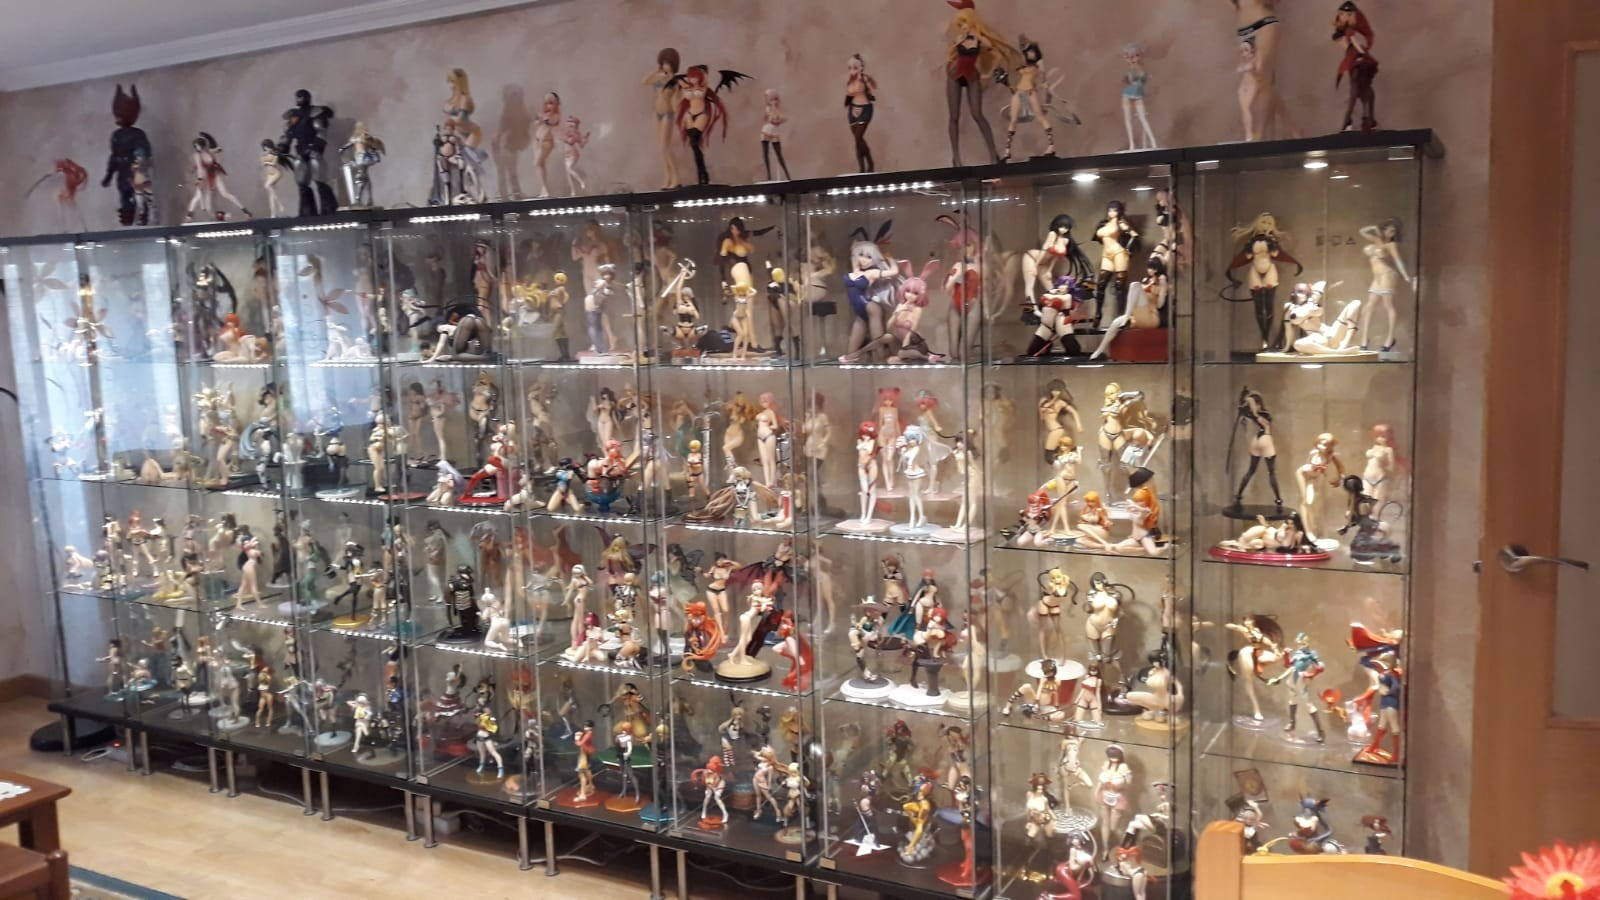 https://static.myfigurecollection.net/upload/pictures/2018/07/01/2011092.jpeg